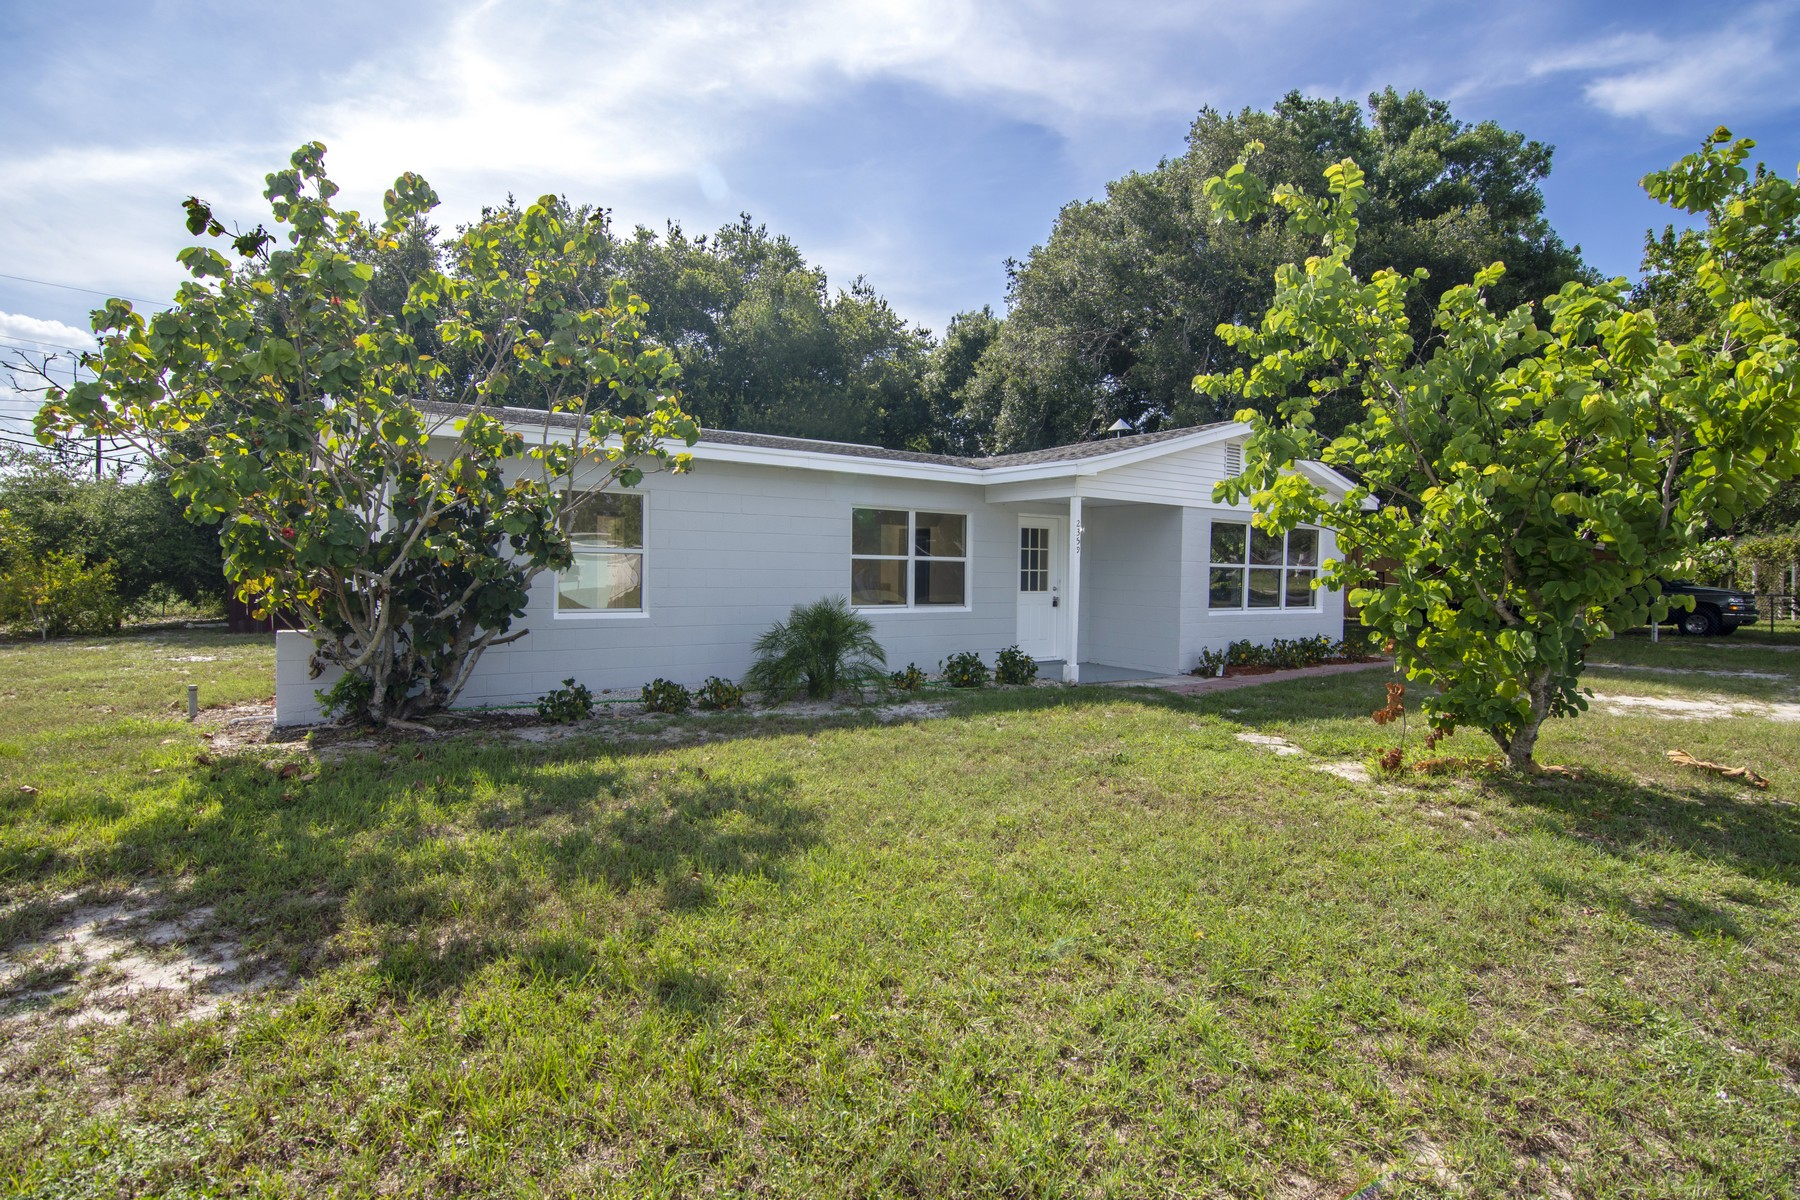 Completely Renovated Home on a Large Corner Lot 2359 1st Court SE Vero Beach, Florida 32962 Estados Unidos